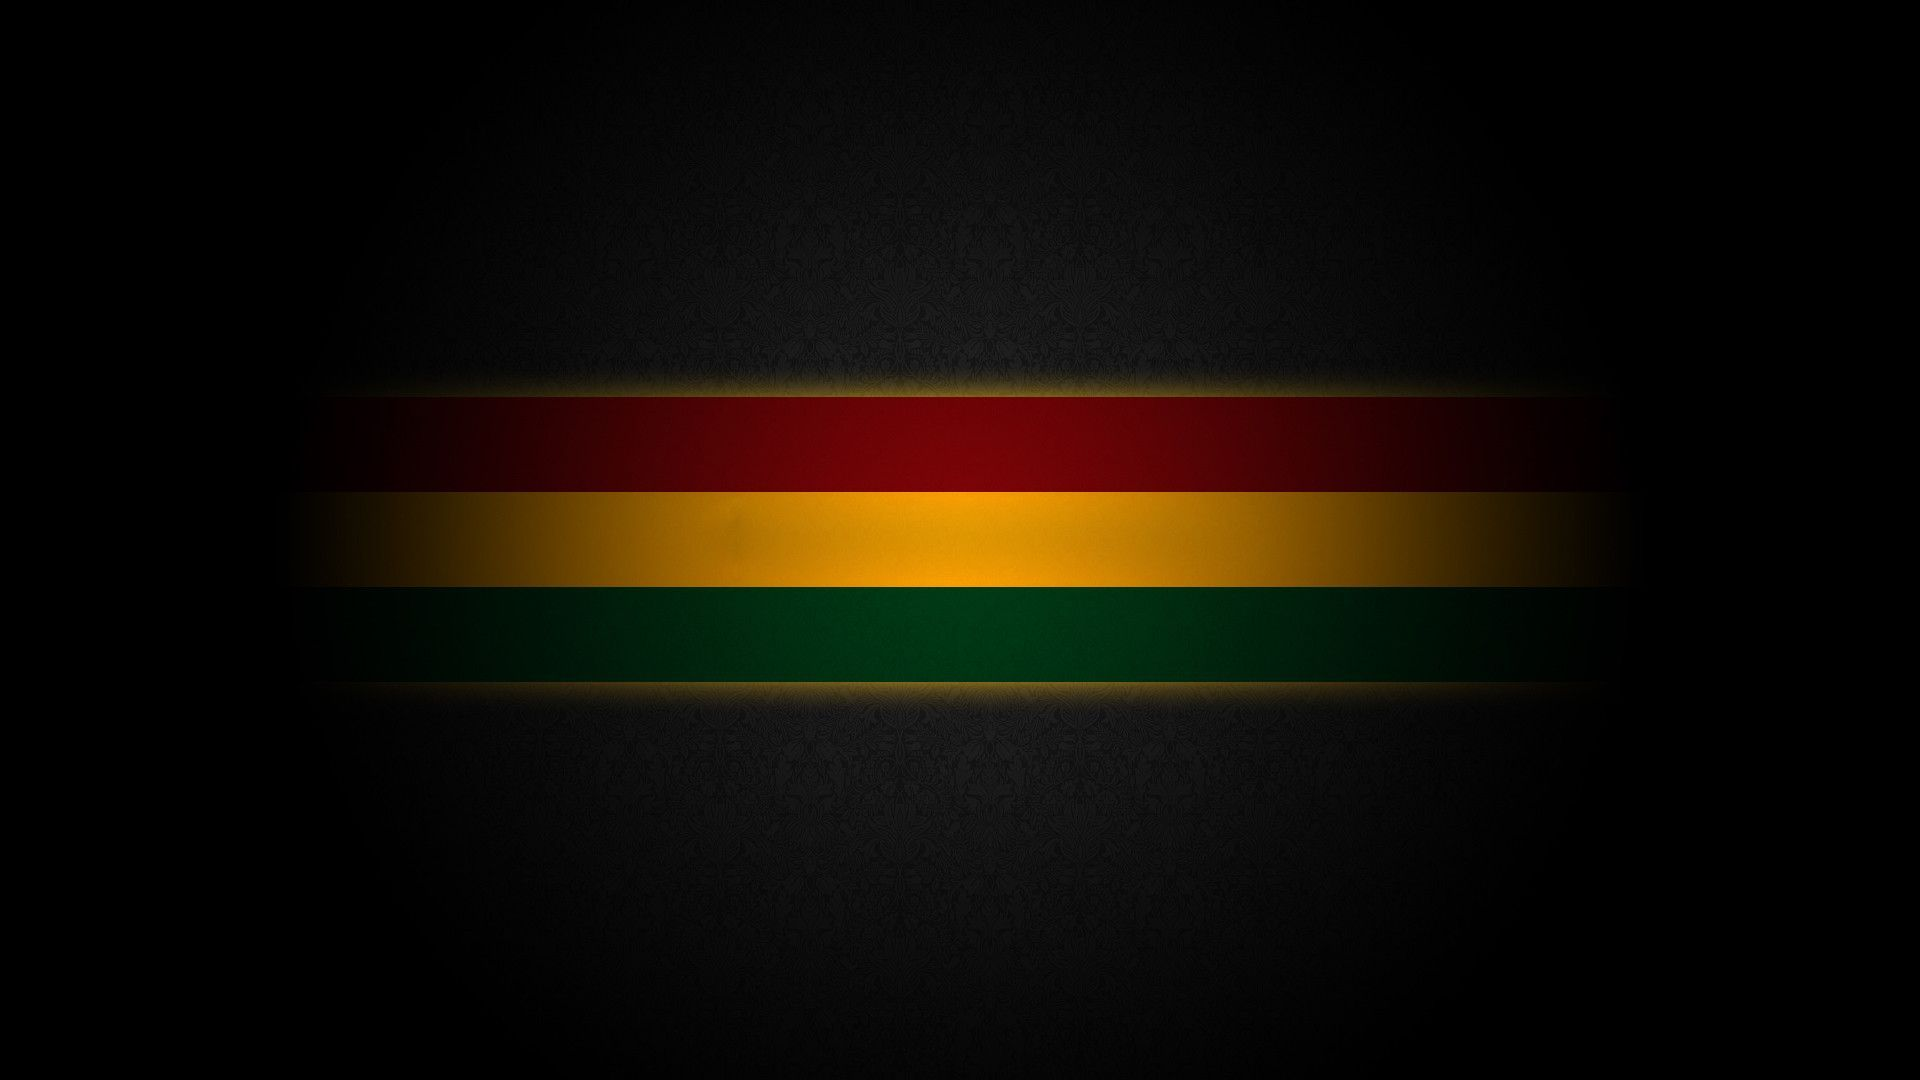 Flag HD Wallpapers Backgrounds Wallpaper 1024x768 Rasta 31